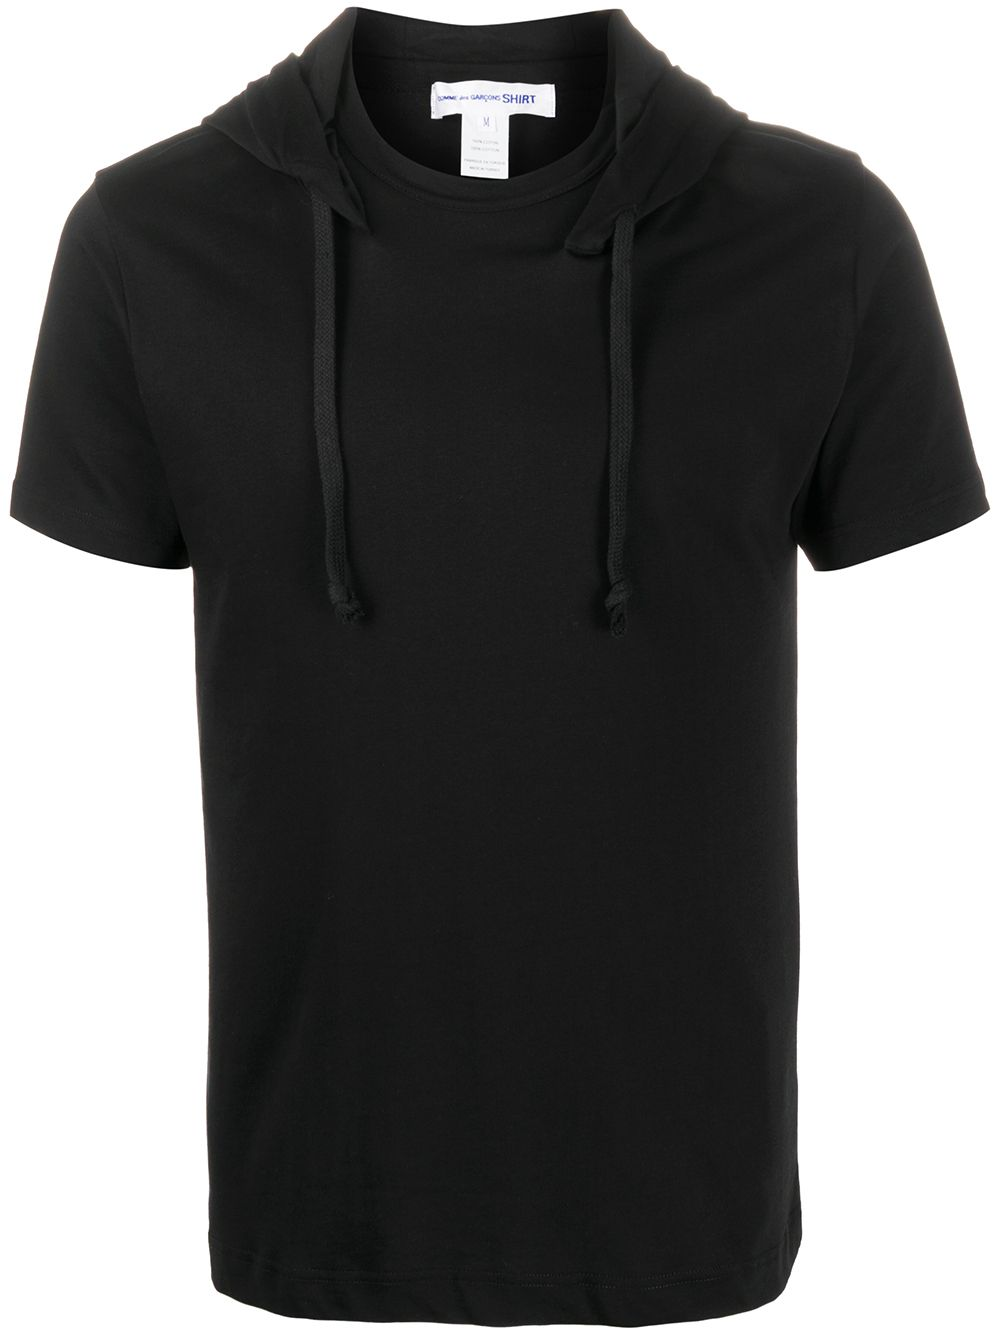 Picture of Comme Shirt | Hooded Slim-Fit T-Shirt